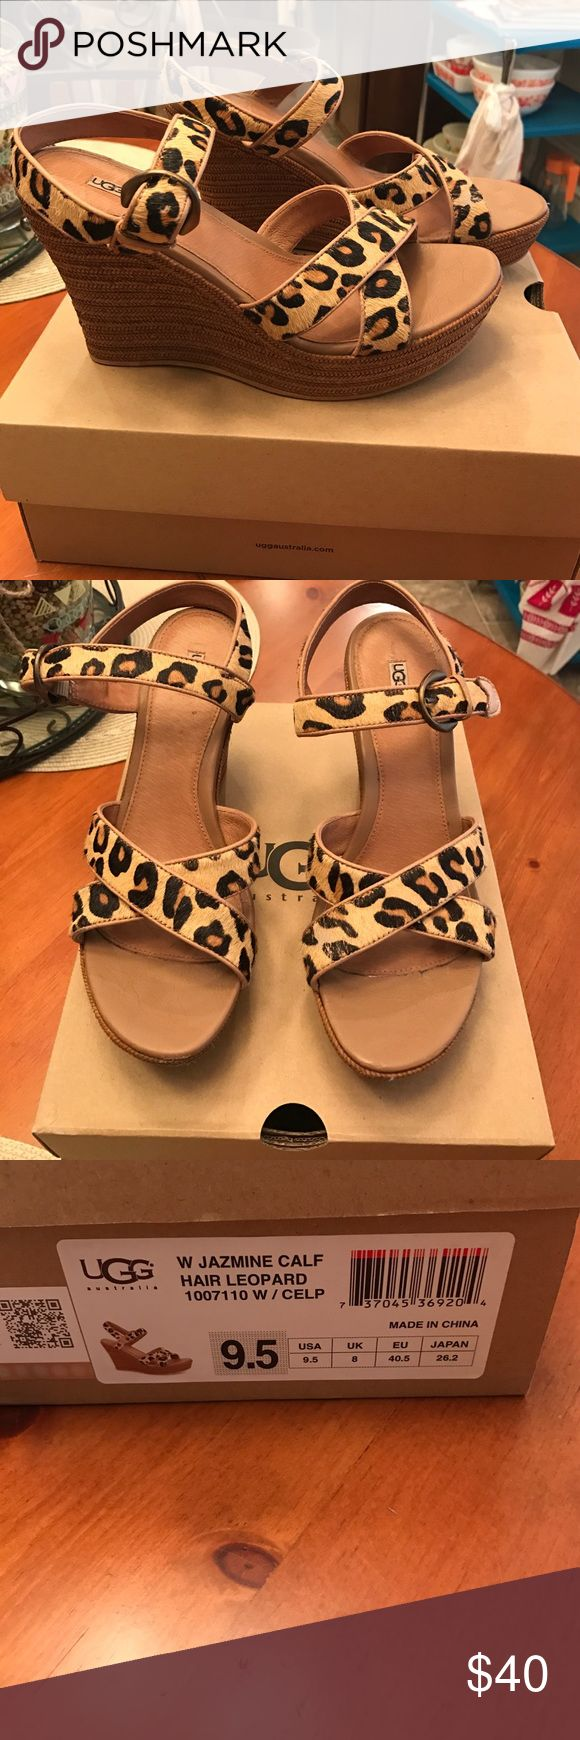 UGG CALF HAIR LEOPARD WEDGES Super cute and stylish leopard wedge! UGG Shoes Wedges